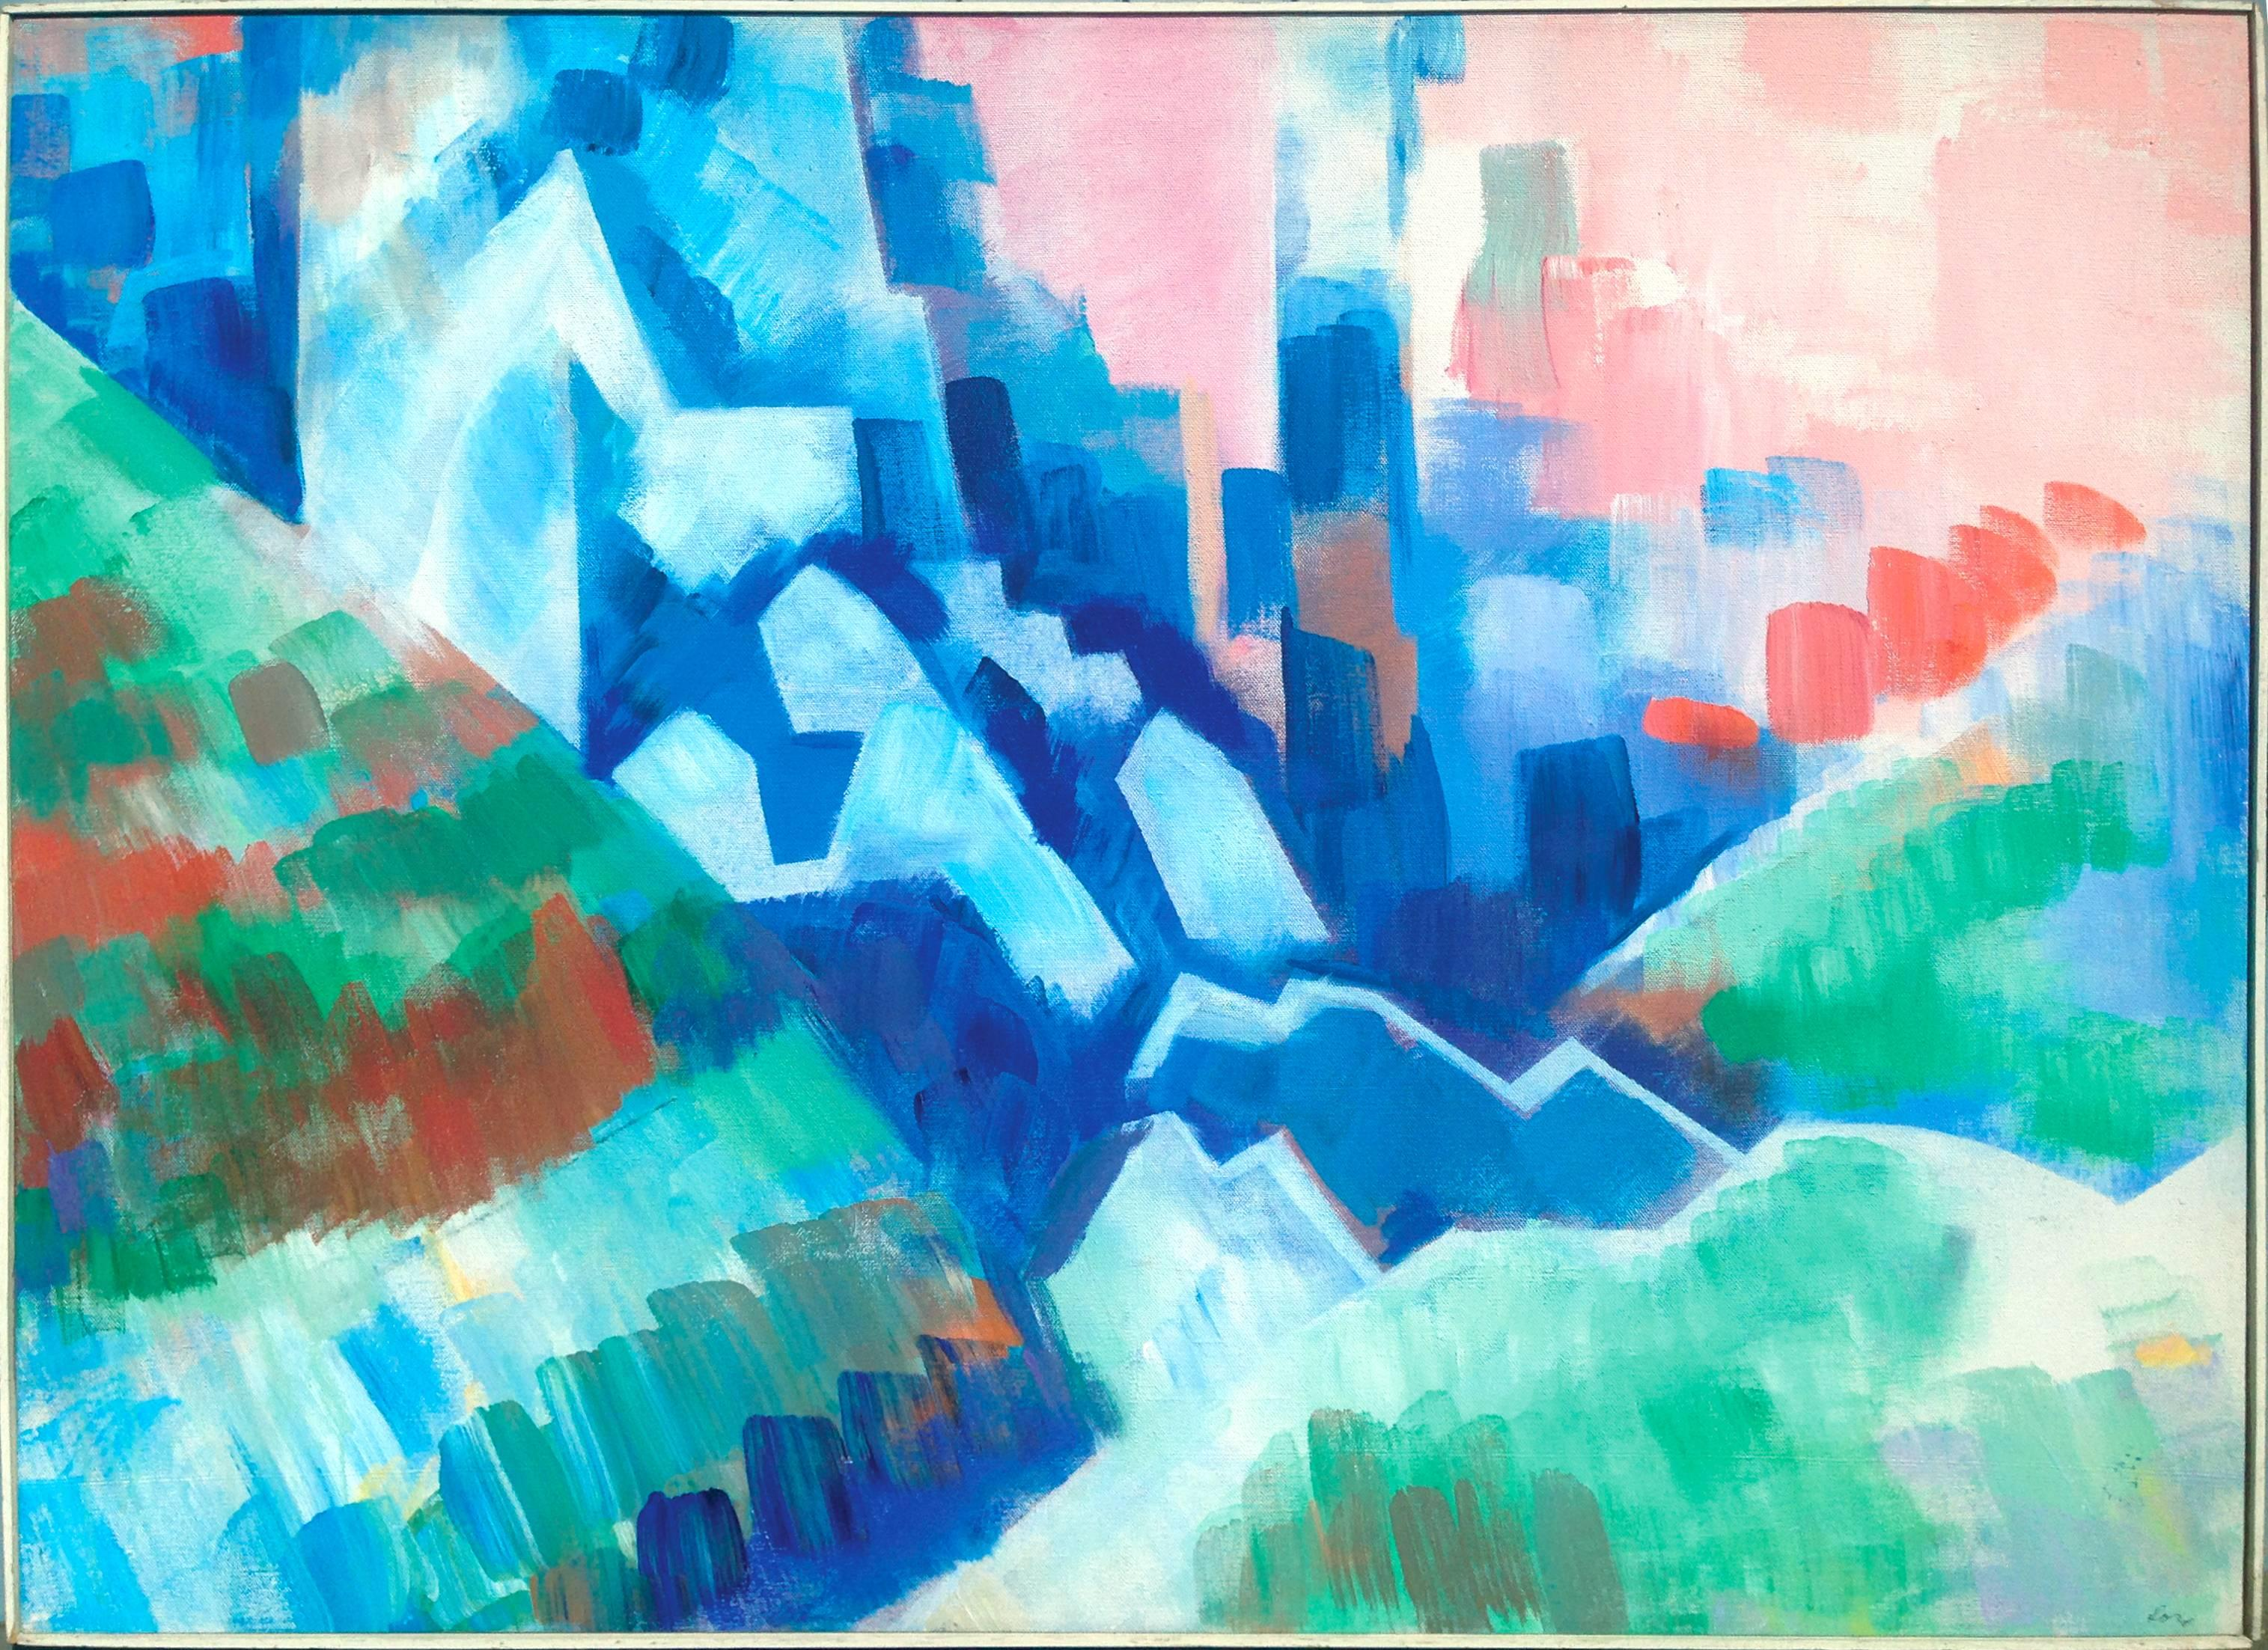 Mountains Overlooking the City Abstracted Cityscape